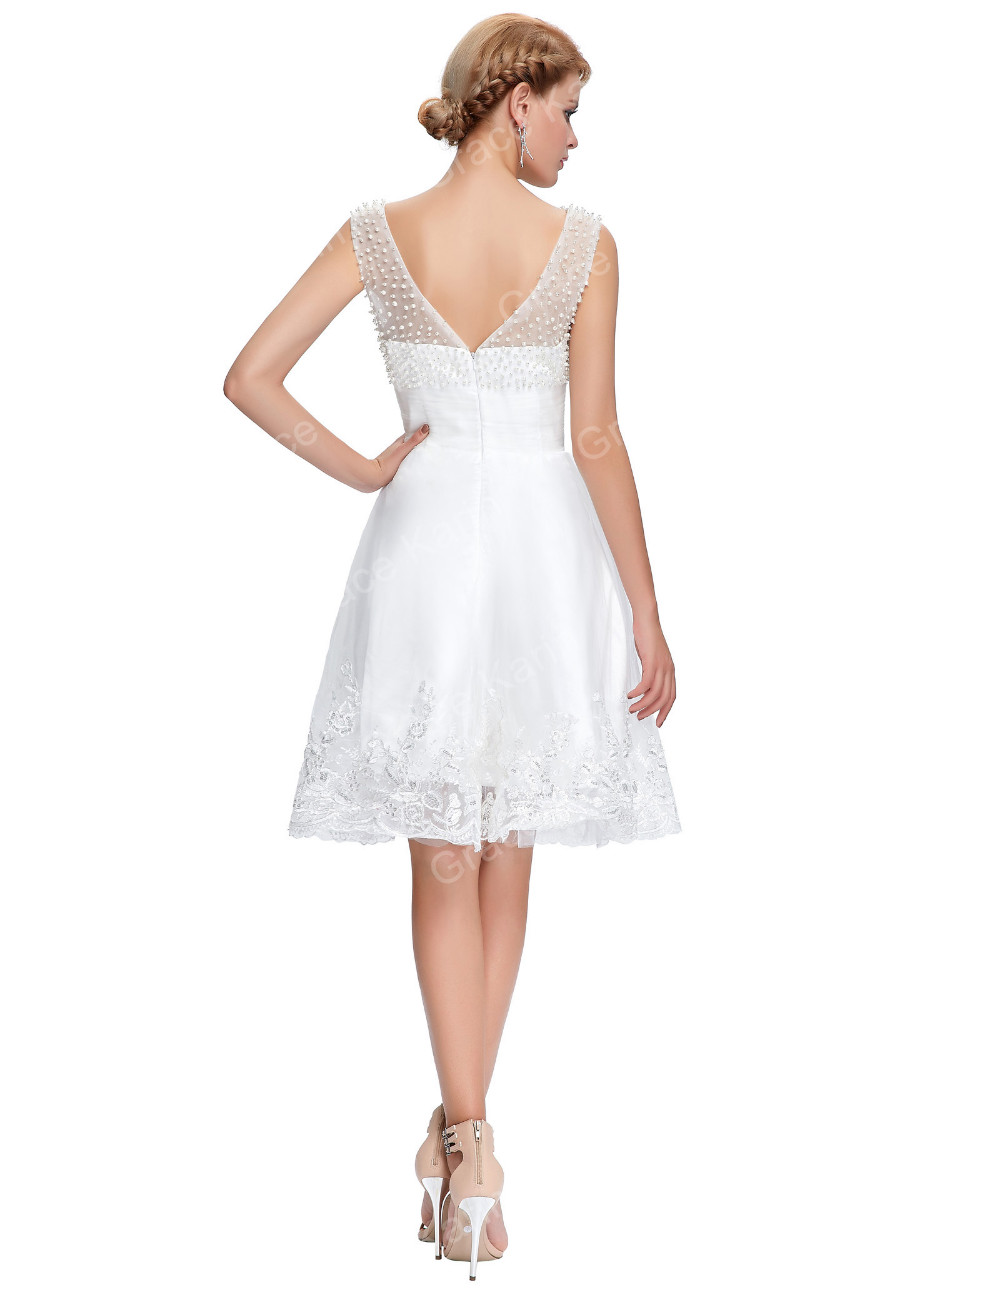 Grace Karin Sleeveless Crew Neck V back Tulle Netting White Short Prom Dress GK000083-1